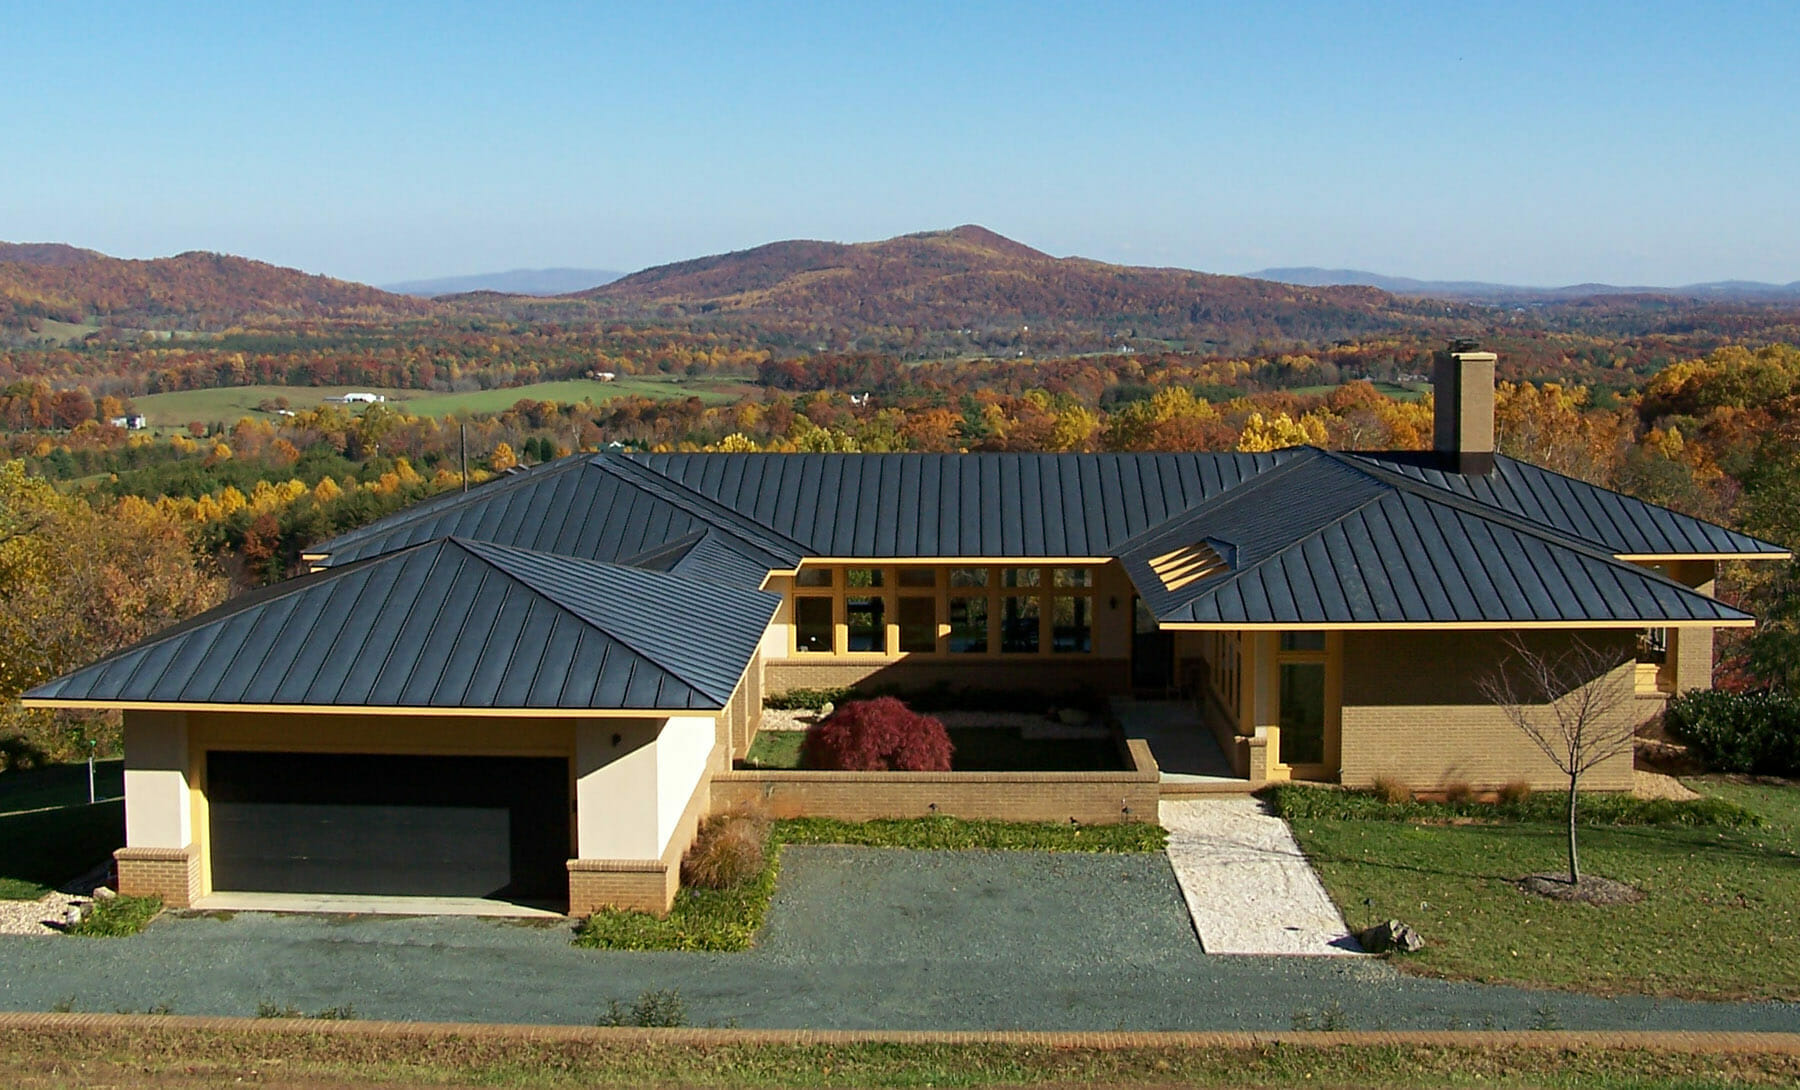 New home construction in Albemarle County with mountain views by Gibson, Magerfield & Edenali